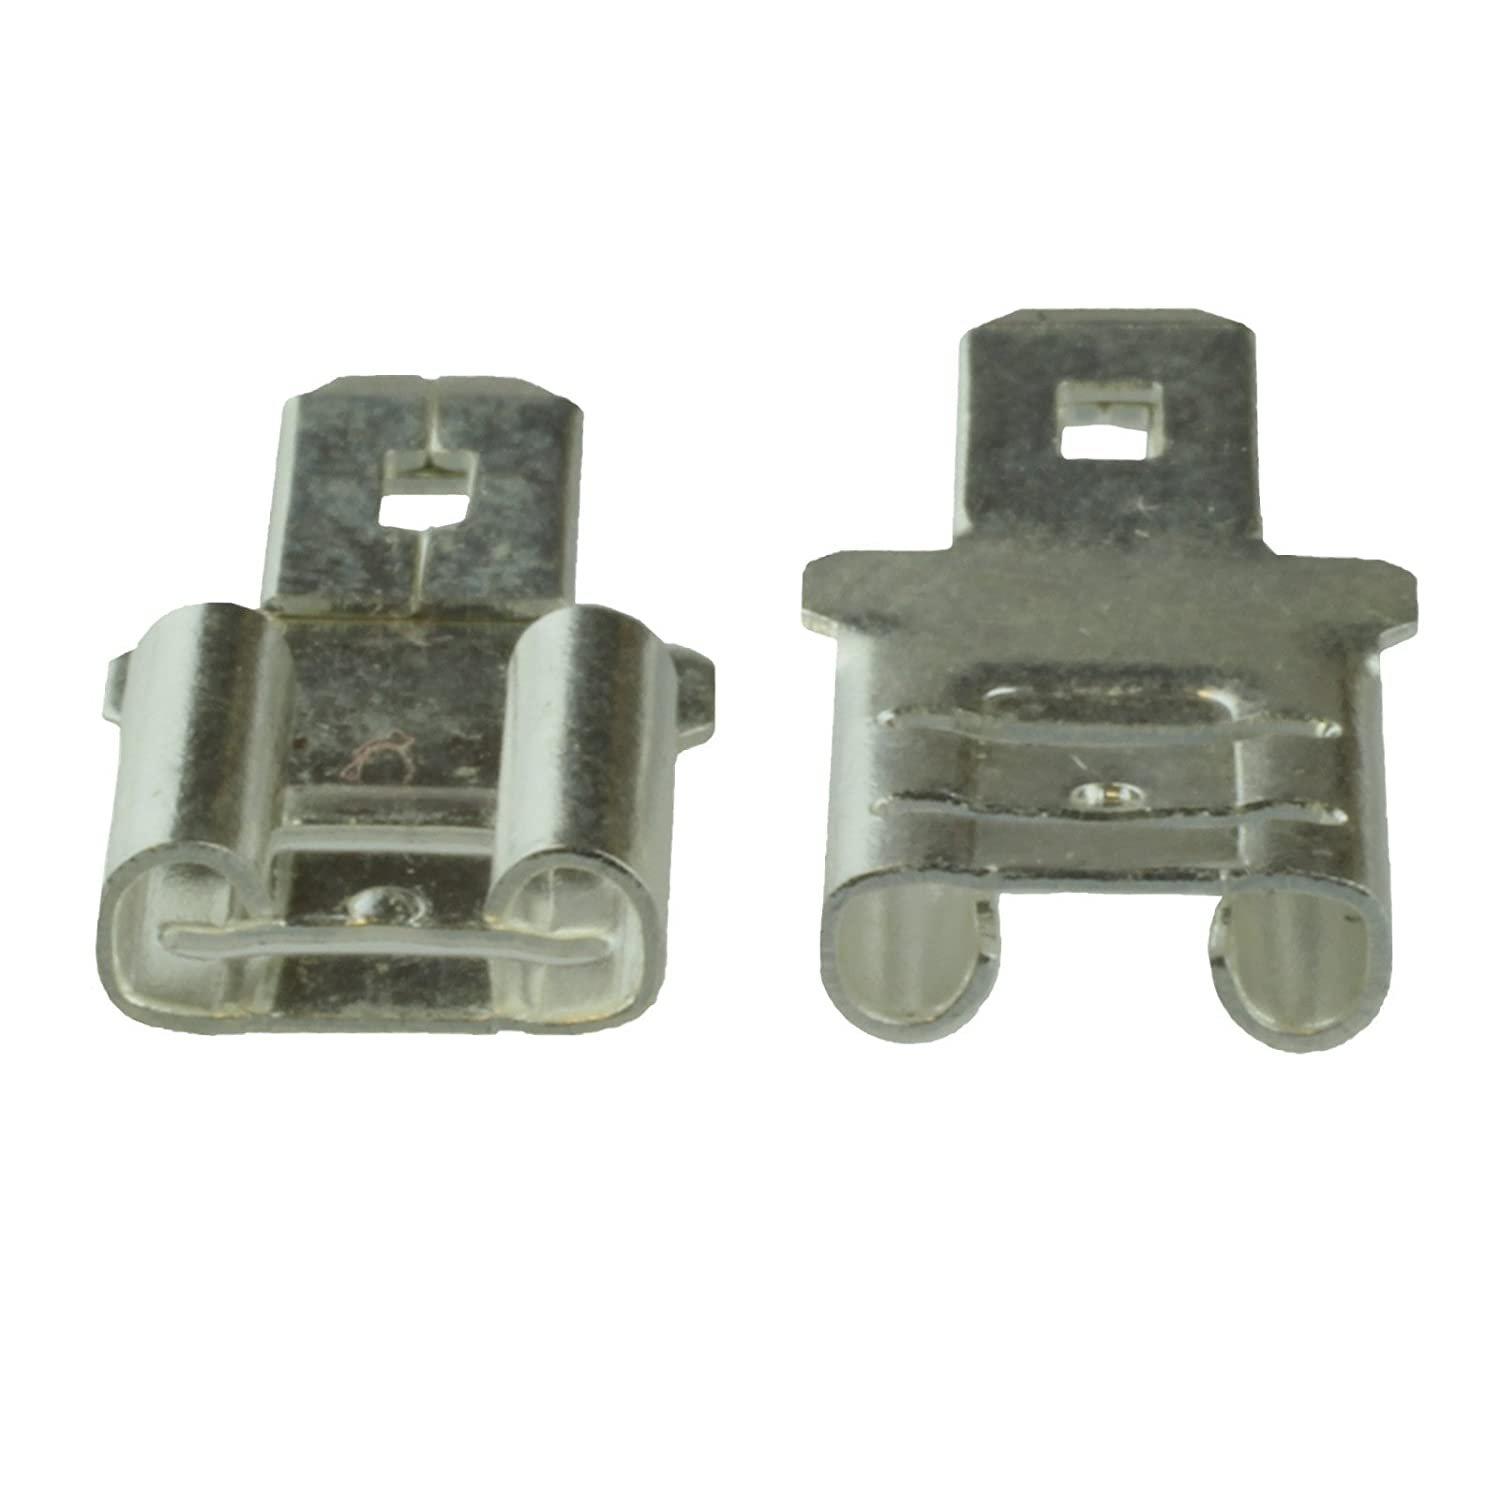 Set of 2 F2 to F1 Terminal Adapter